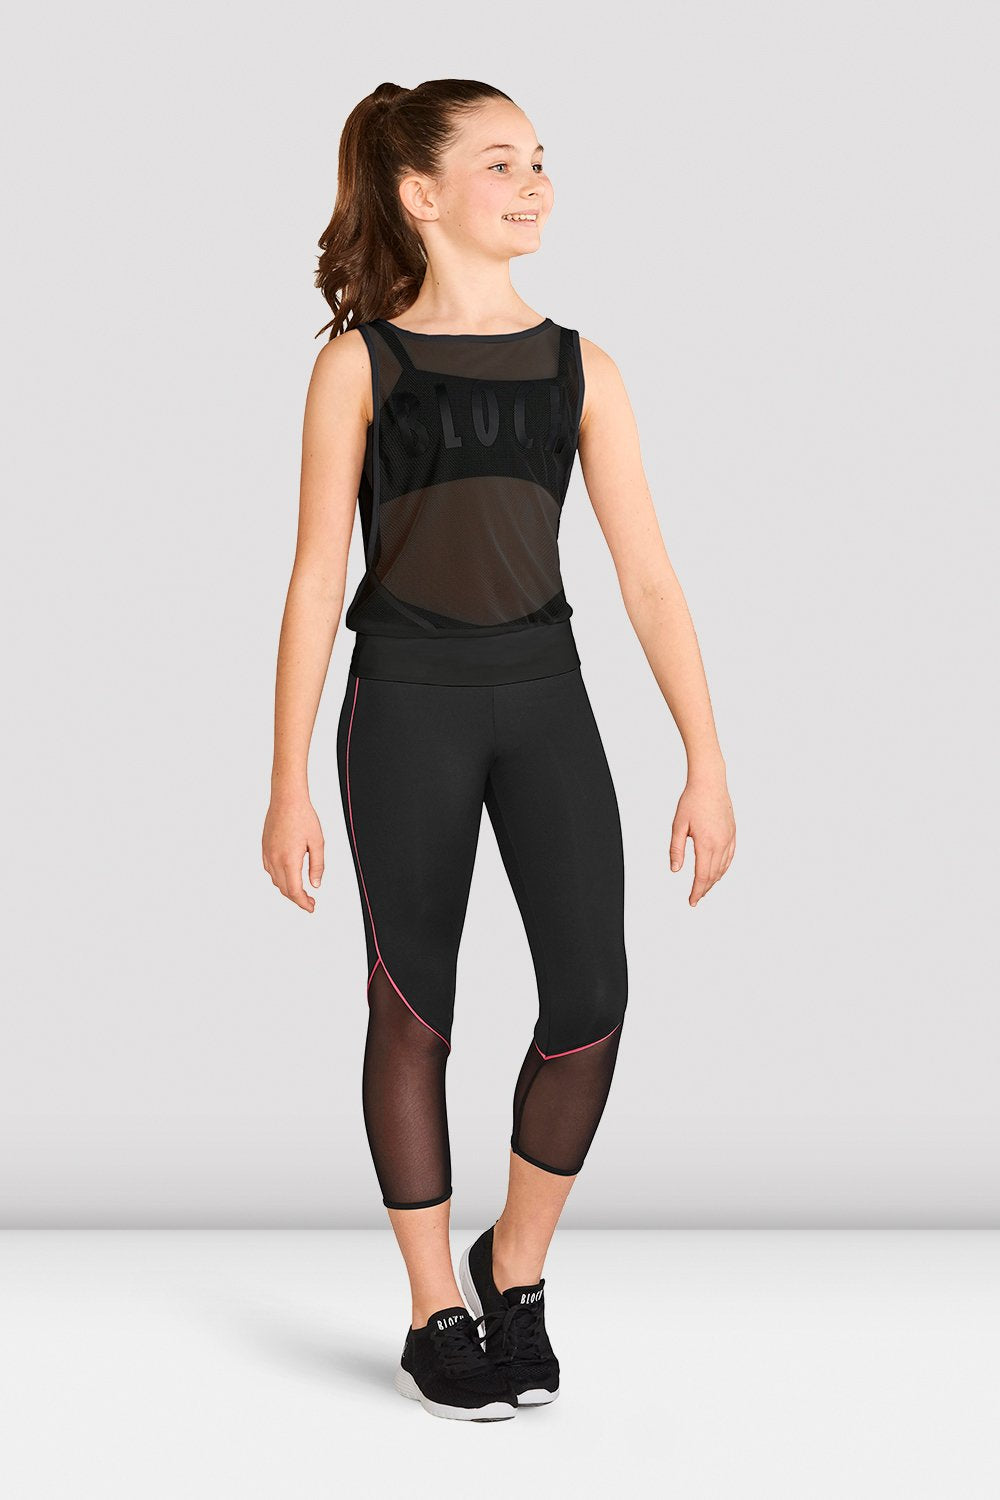 Girls Bloch Sheer Mesh Top - BLOCH US